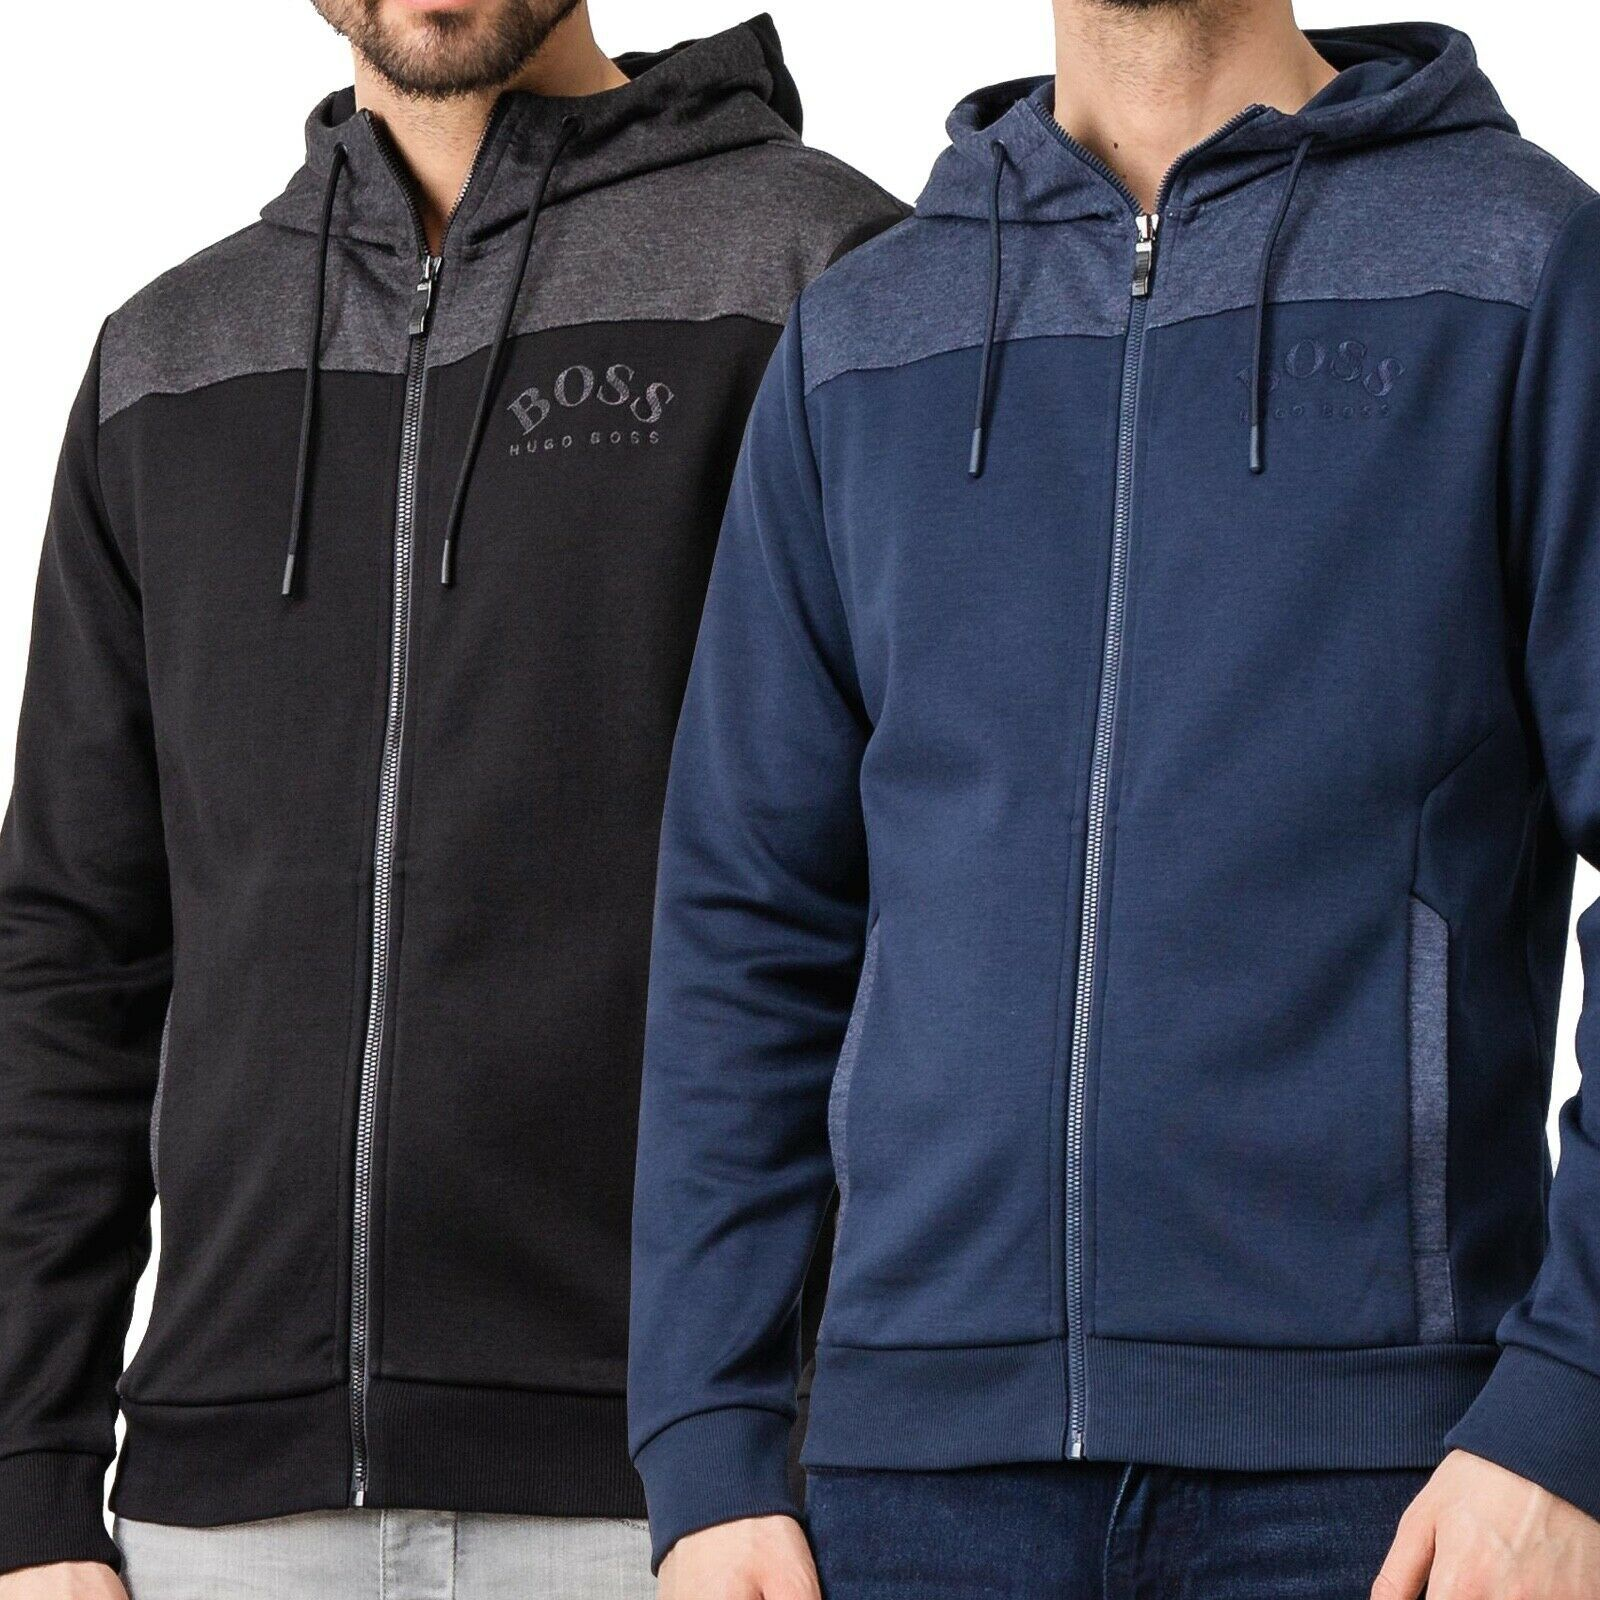 Hugo Boss Men's Premium Zip-Through Hoodie Sweatshirt Jacket With Curved Logo